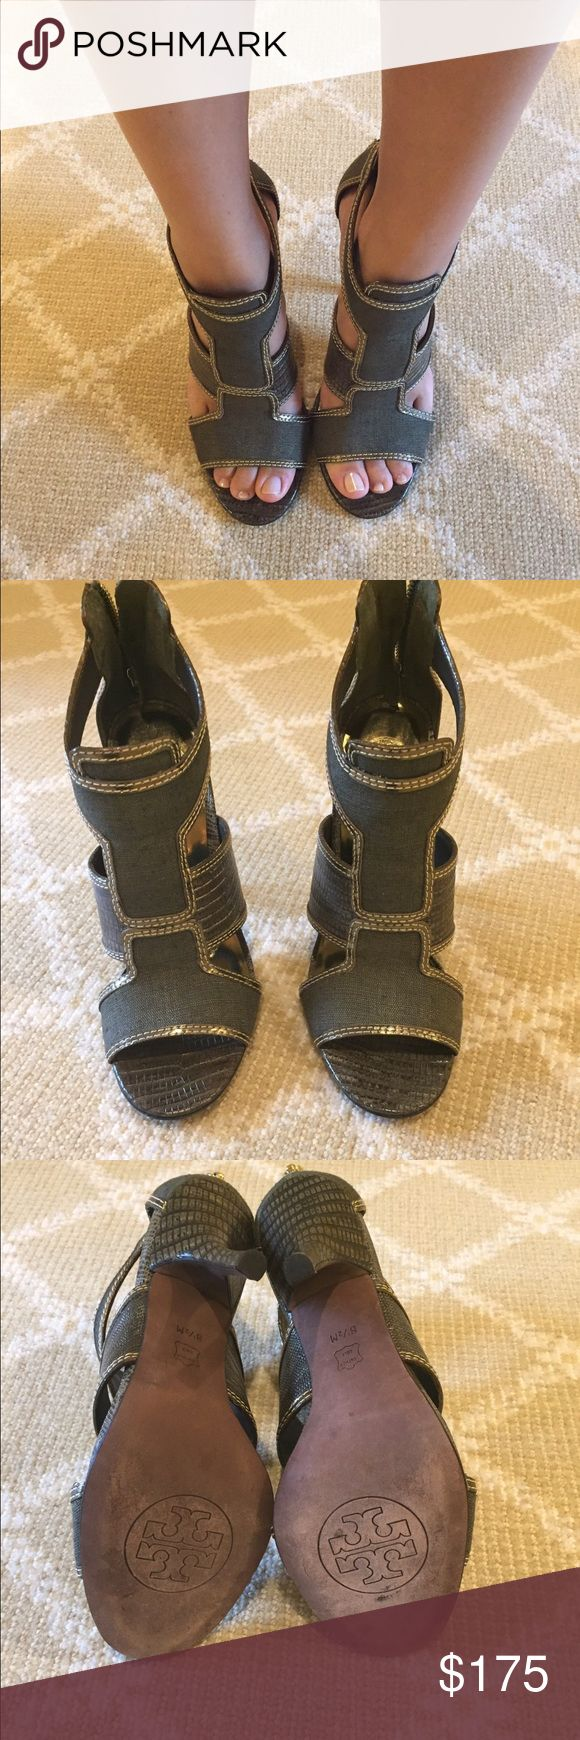 Tory burch Cage heel sandal Size 8 1/2 Tory Burch cage heel sandal in beautiful green color.  Perfect for fall.  Zipper up the back heel. Tory Burch Shoes Heels